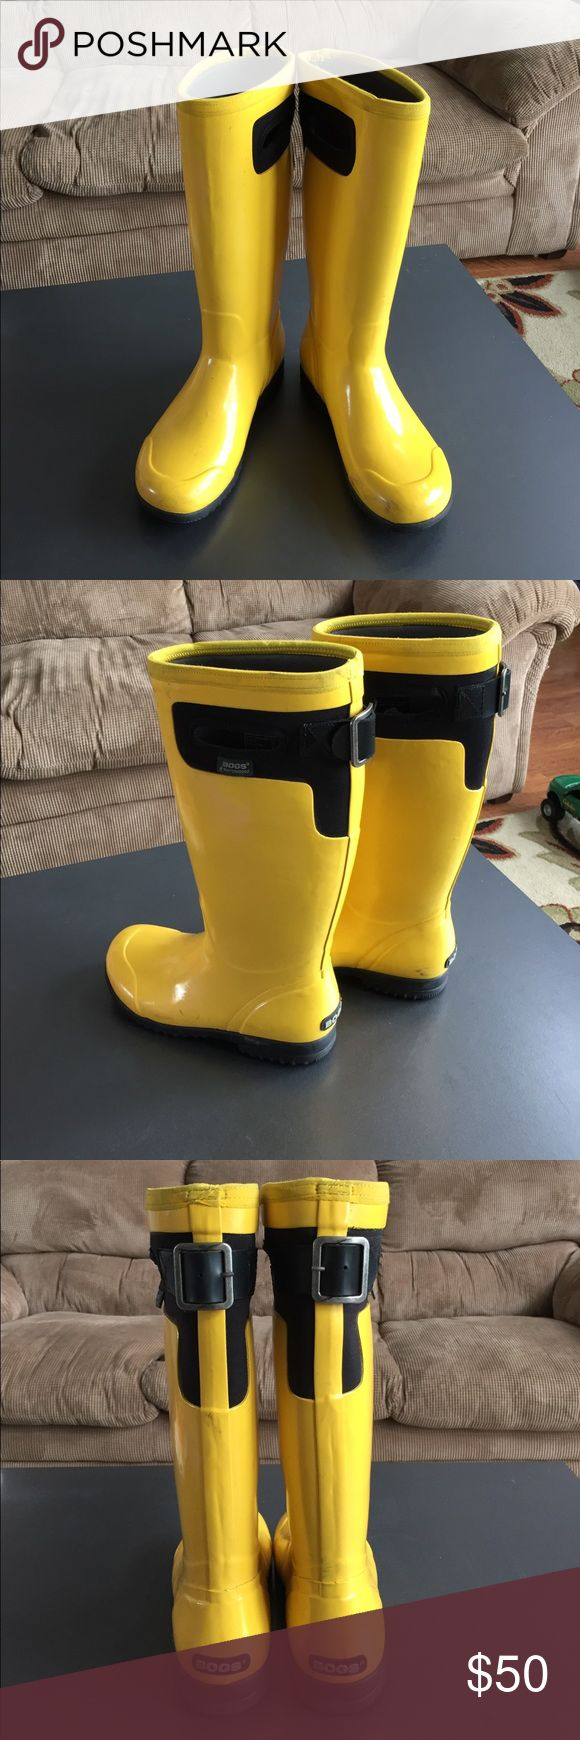 BOGS bright yellow awesomeness Great used condition. Minor scuffing, nothing major these are narrower fit so your feet don't slide around in them.  Super comfy and cute! Fits 6 to 7 Bogs Shoes Winter & Rain Boots